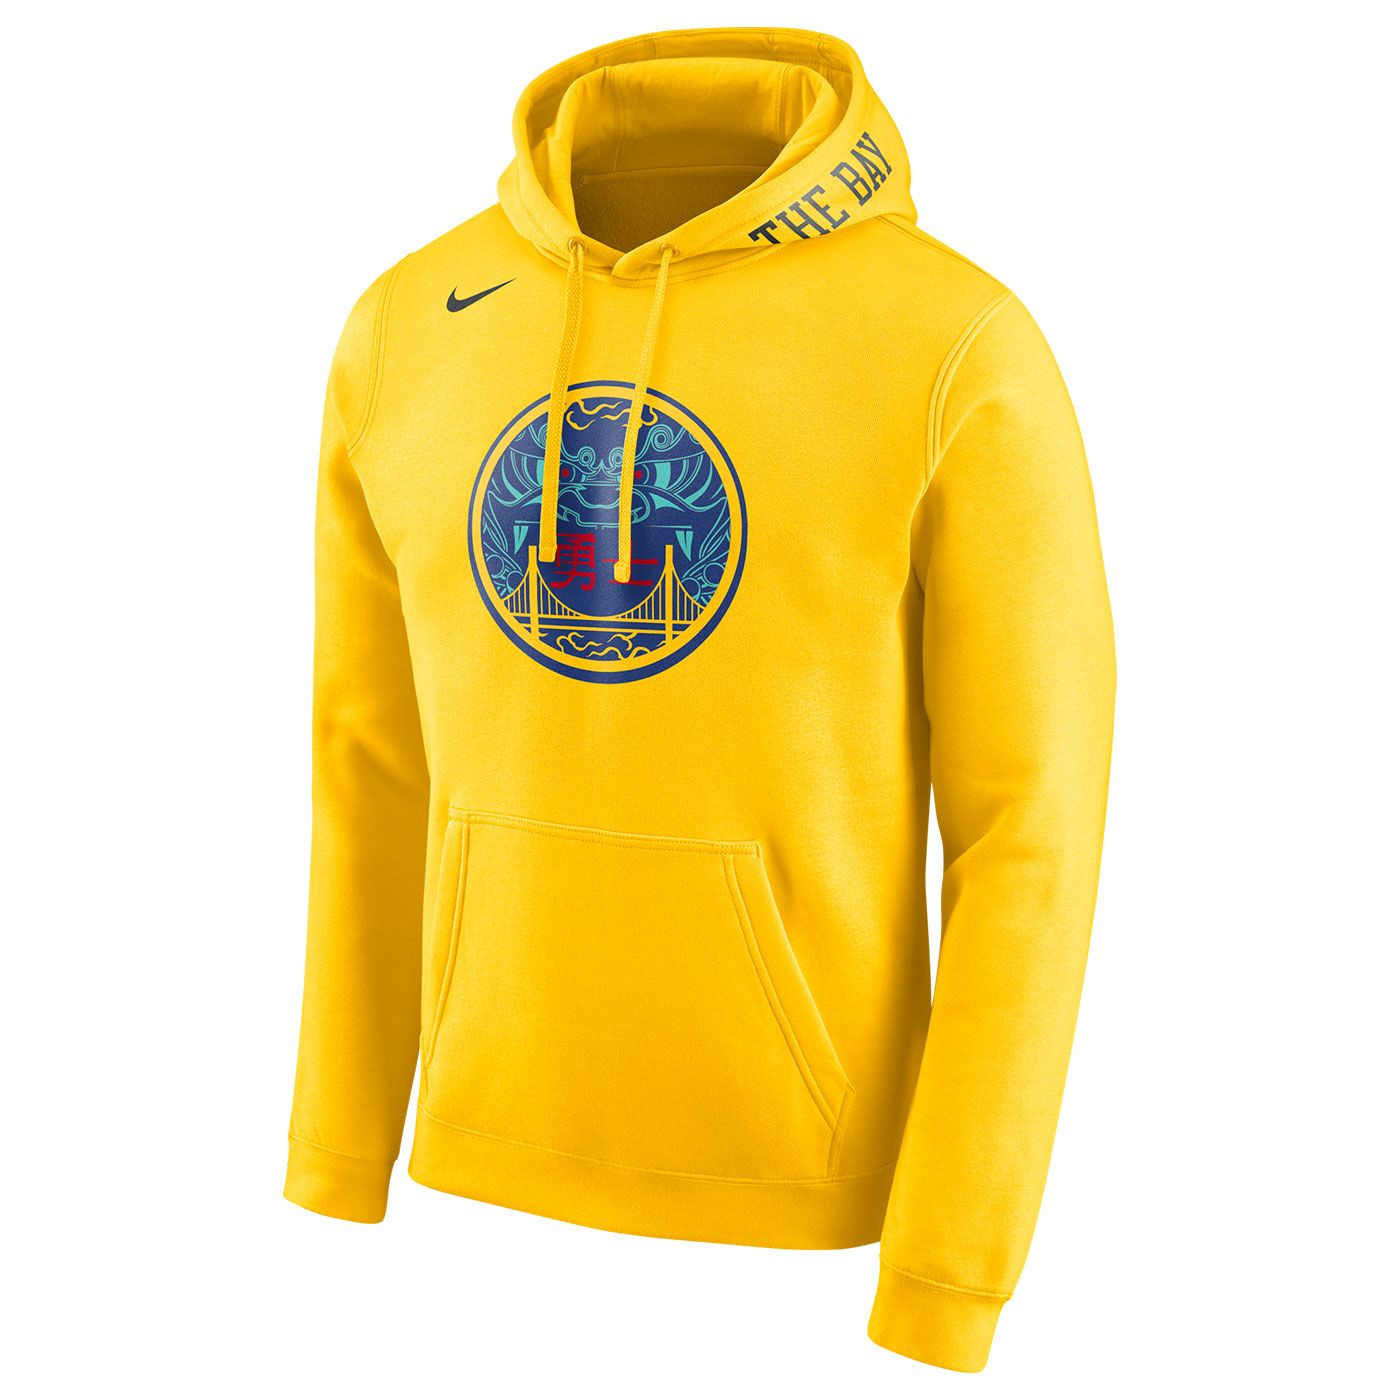 Golden State Warriors Nike Men s City Edition  The Bay  Chinese Heritage  Pullover Club Hoodie - Gold 3a5b530b0